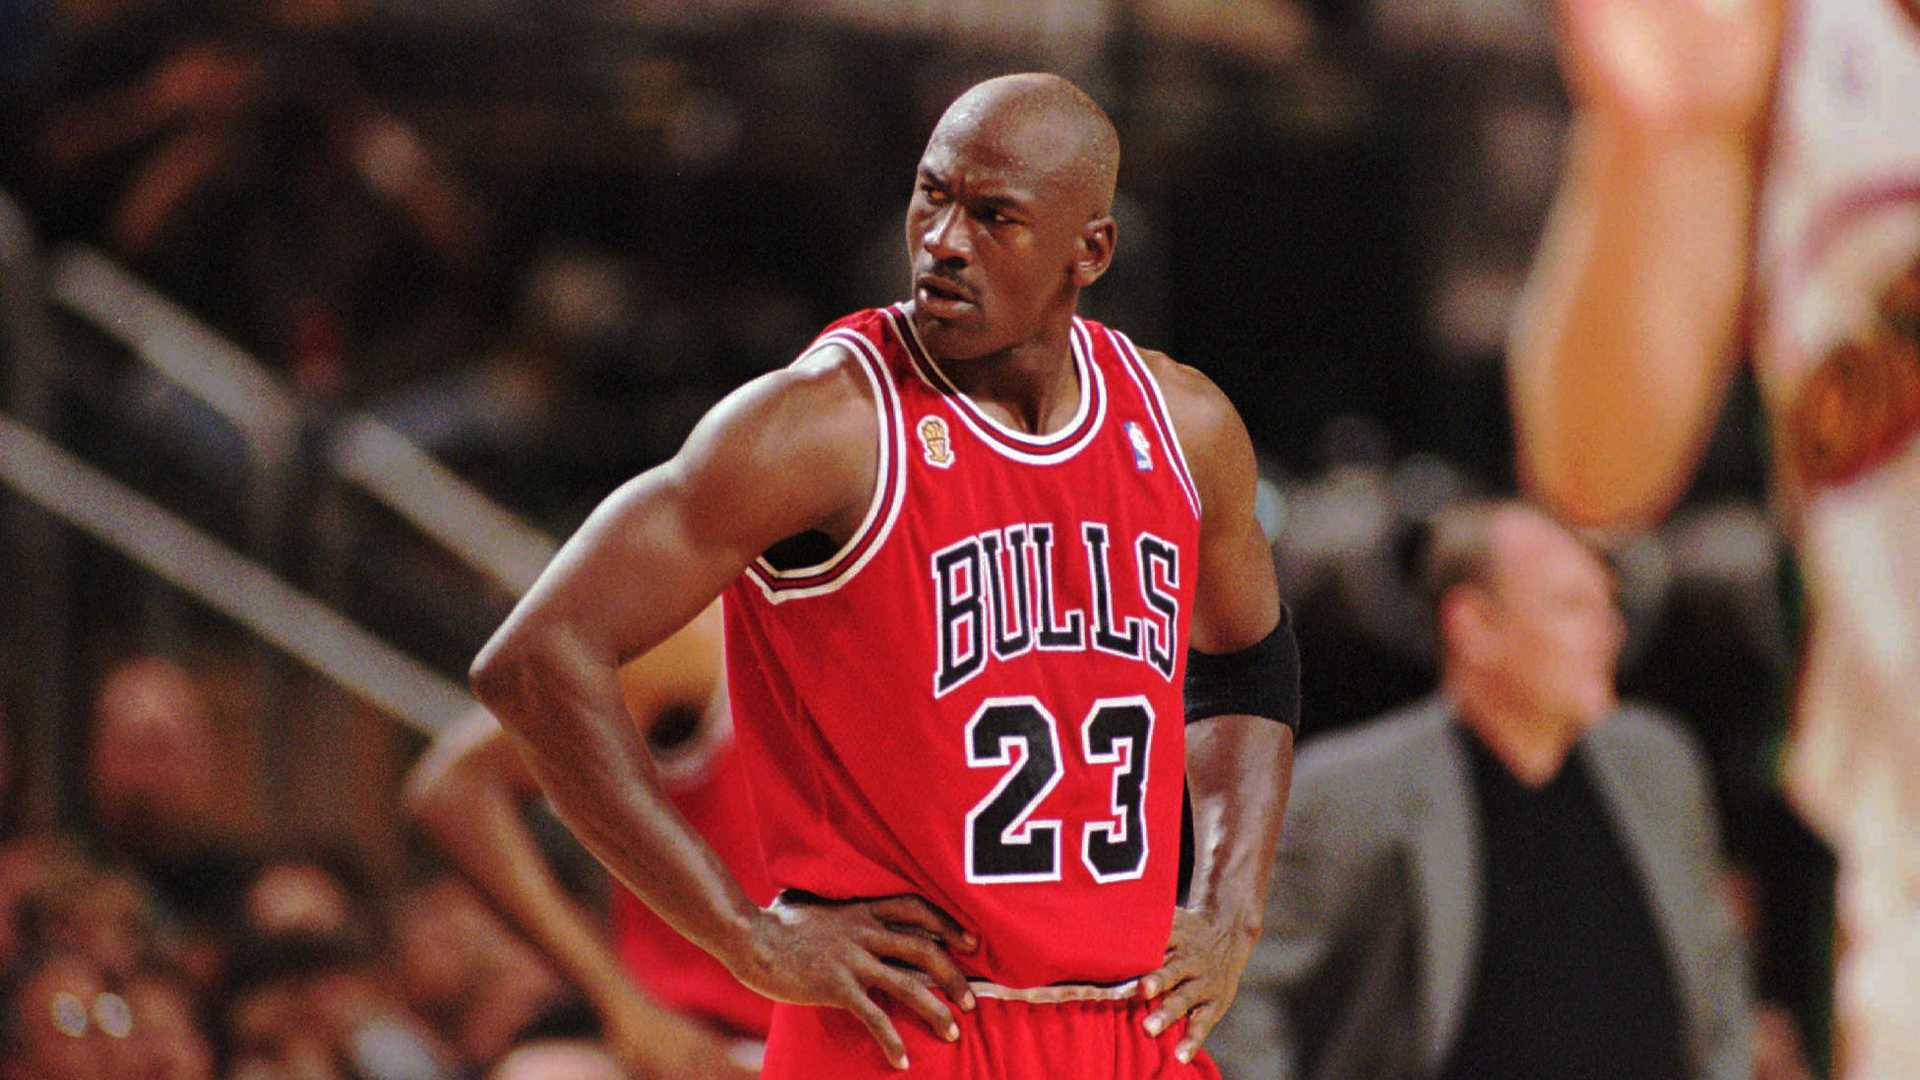 Jordan: Catalyst for the End of 90's NBA Toughness